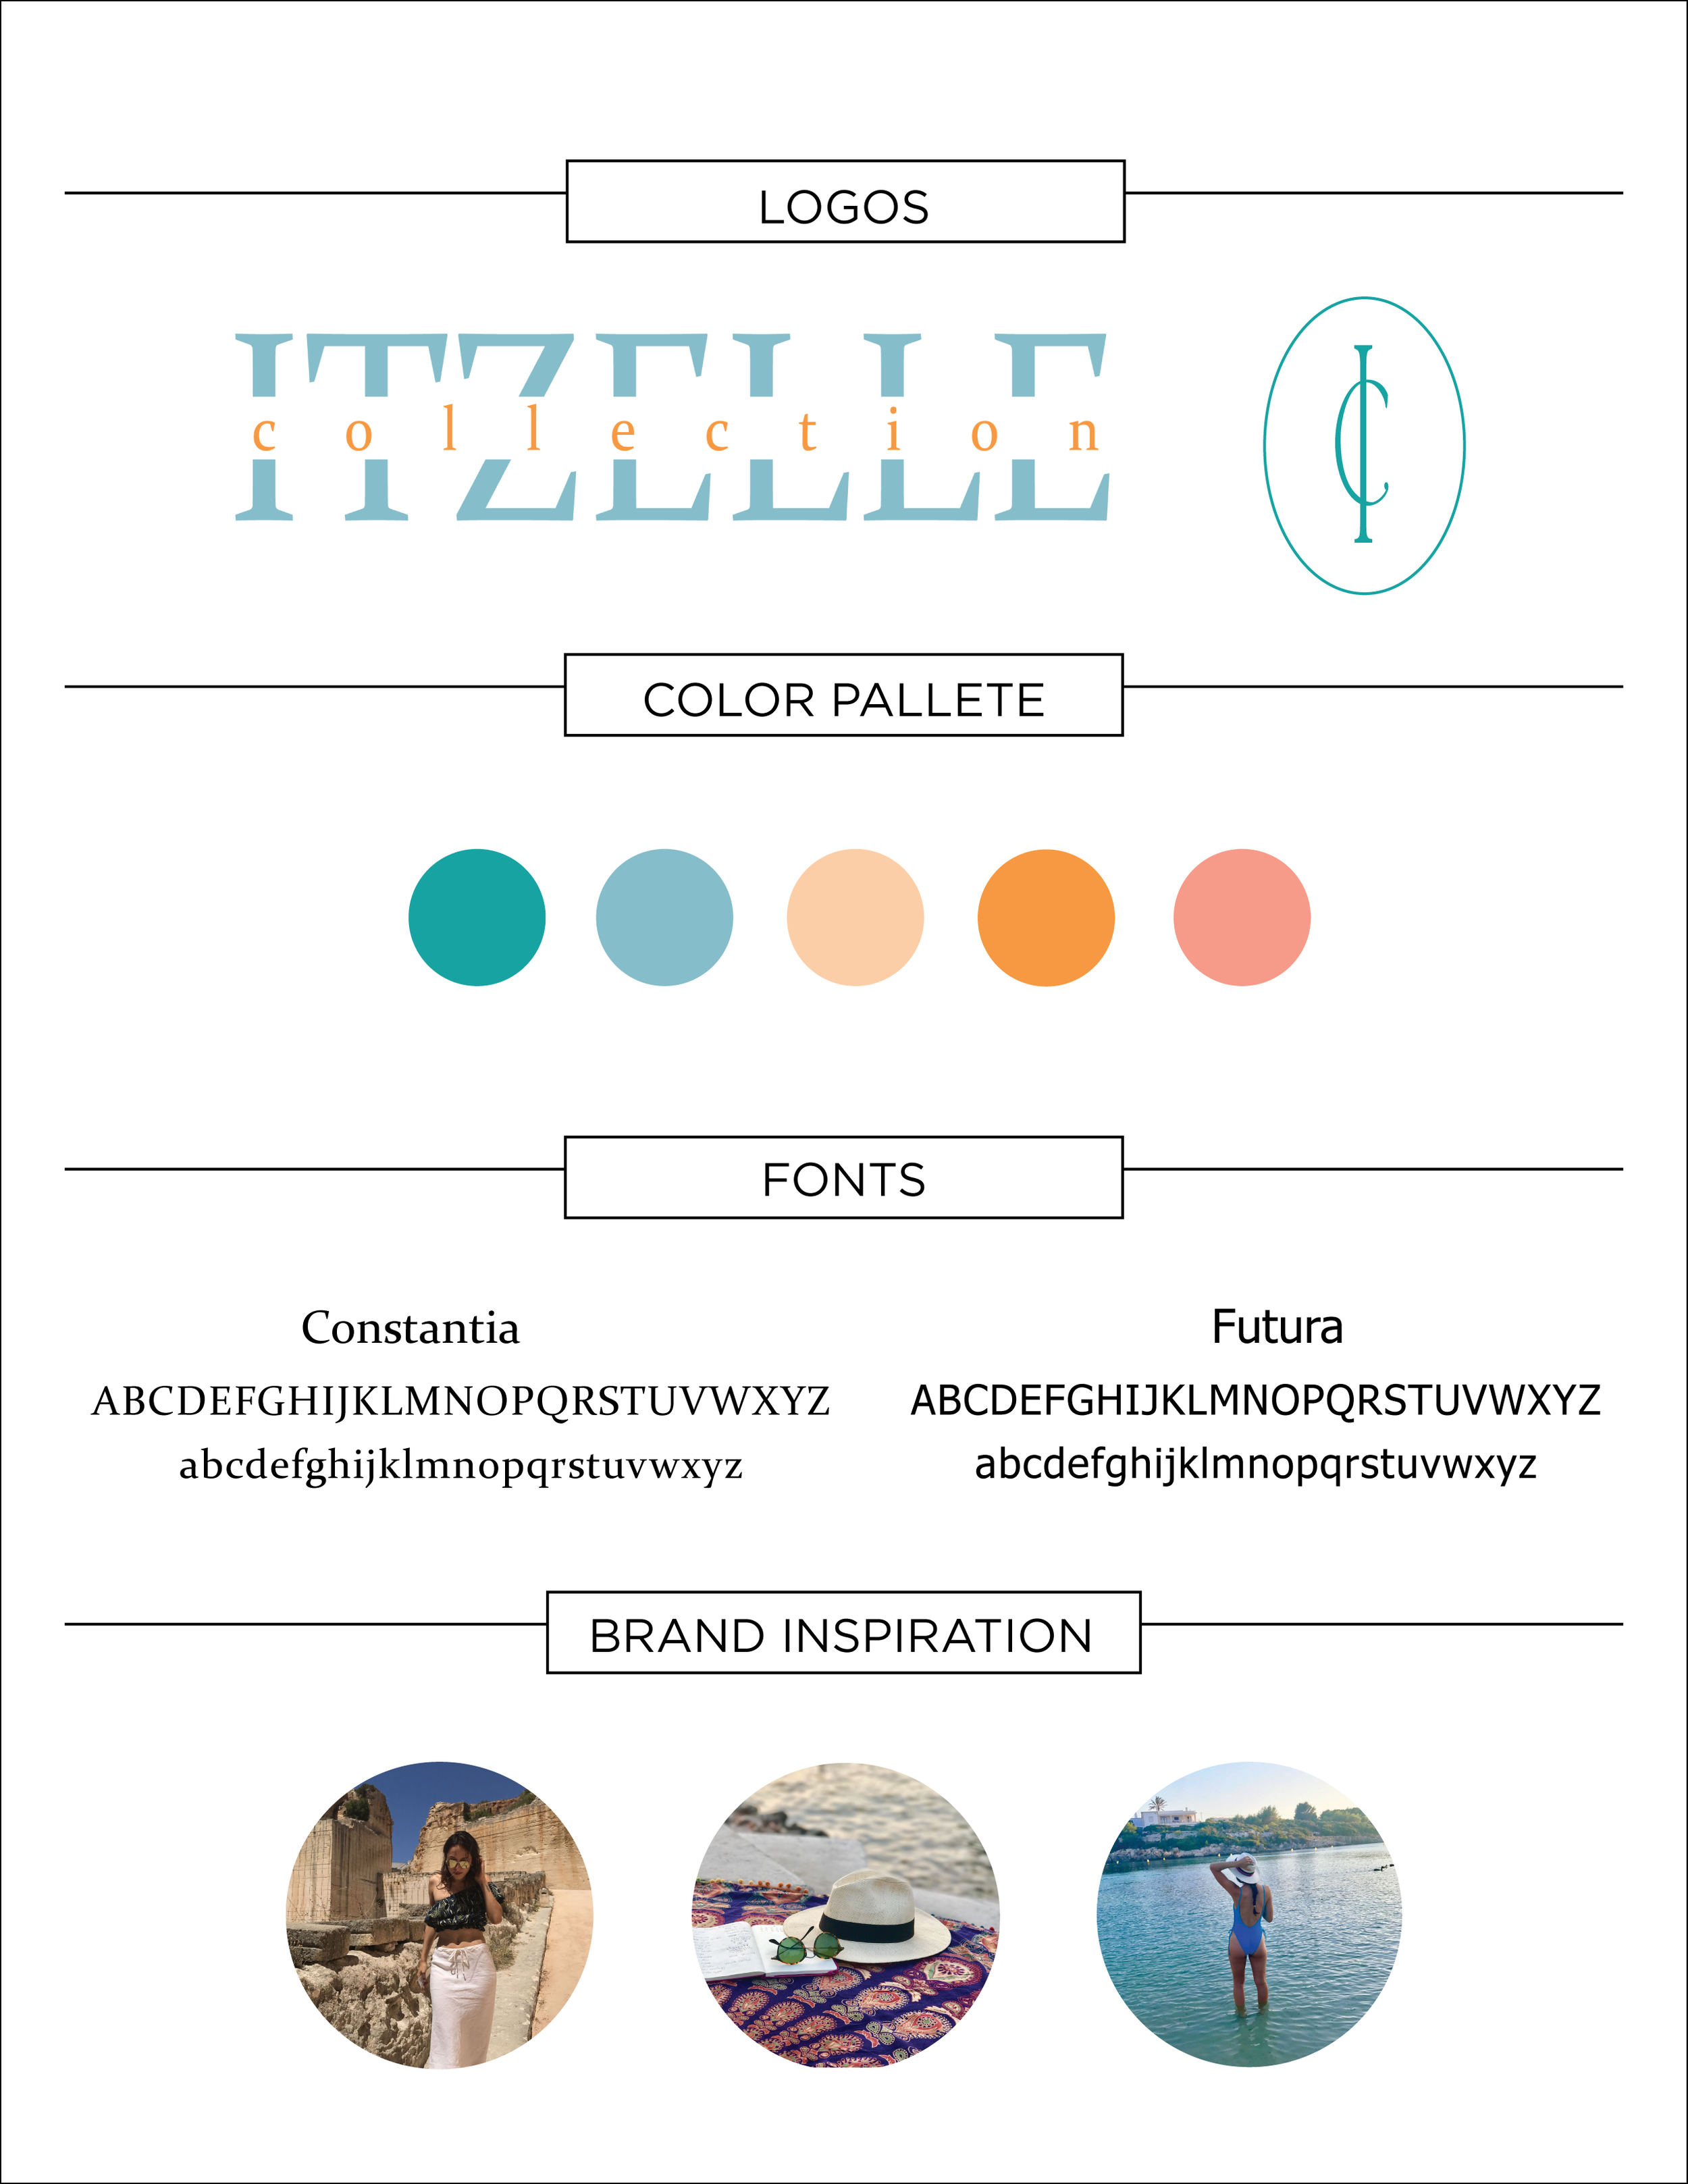 Itzelle Collection Branding Guide - During the branding process I worked with the designer to understand where her inspiration came from so that I could infuse that into the brand identity. Itzelle Collection sells avarcas from the island of Menorca off of Spain. I spoke with the designer about what colors, textures, and places on the island inspired her the most. With that information I created this guide.